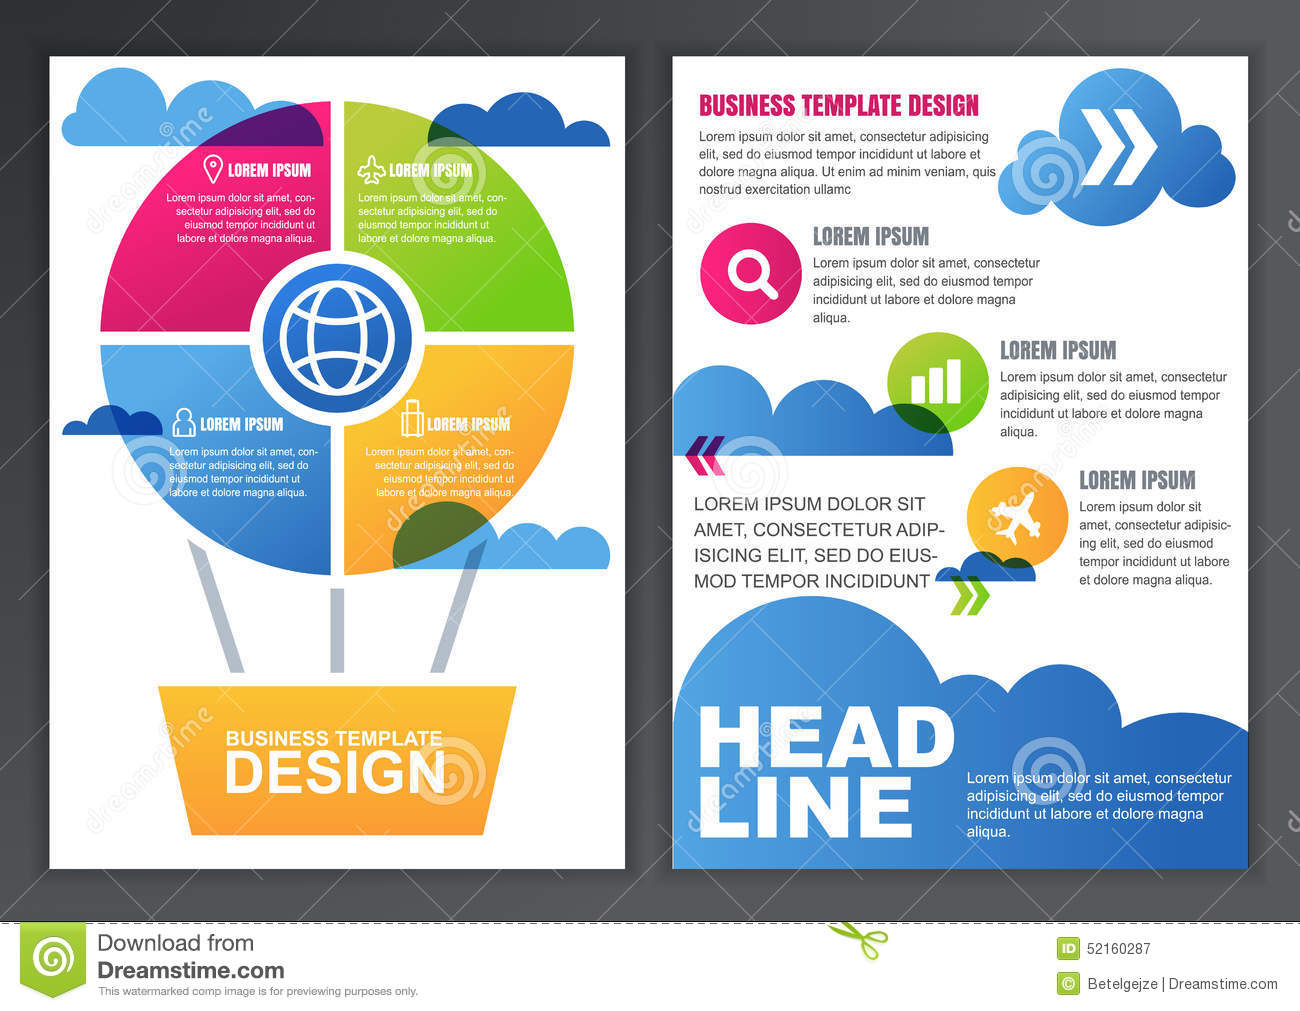 Design flyers templates online for Create a blueprint online free